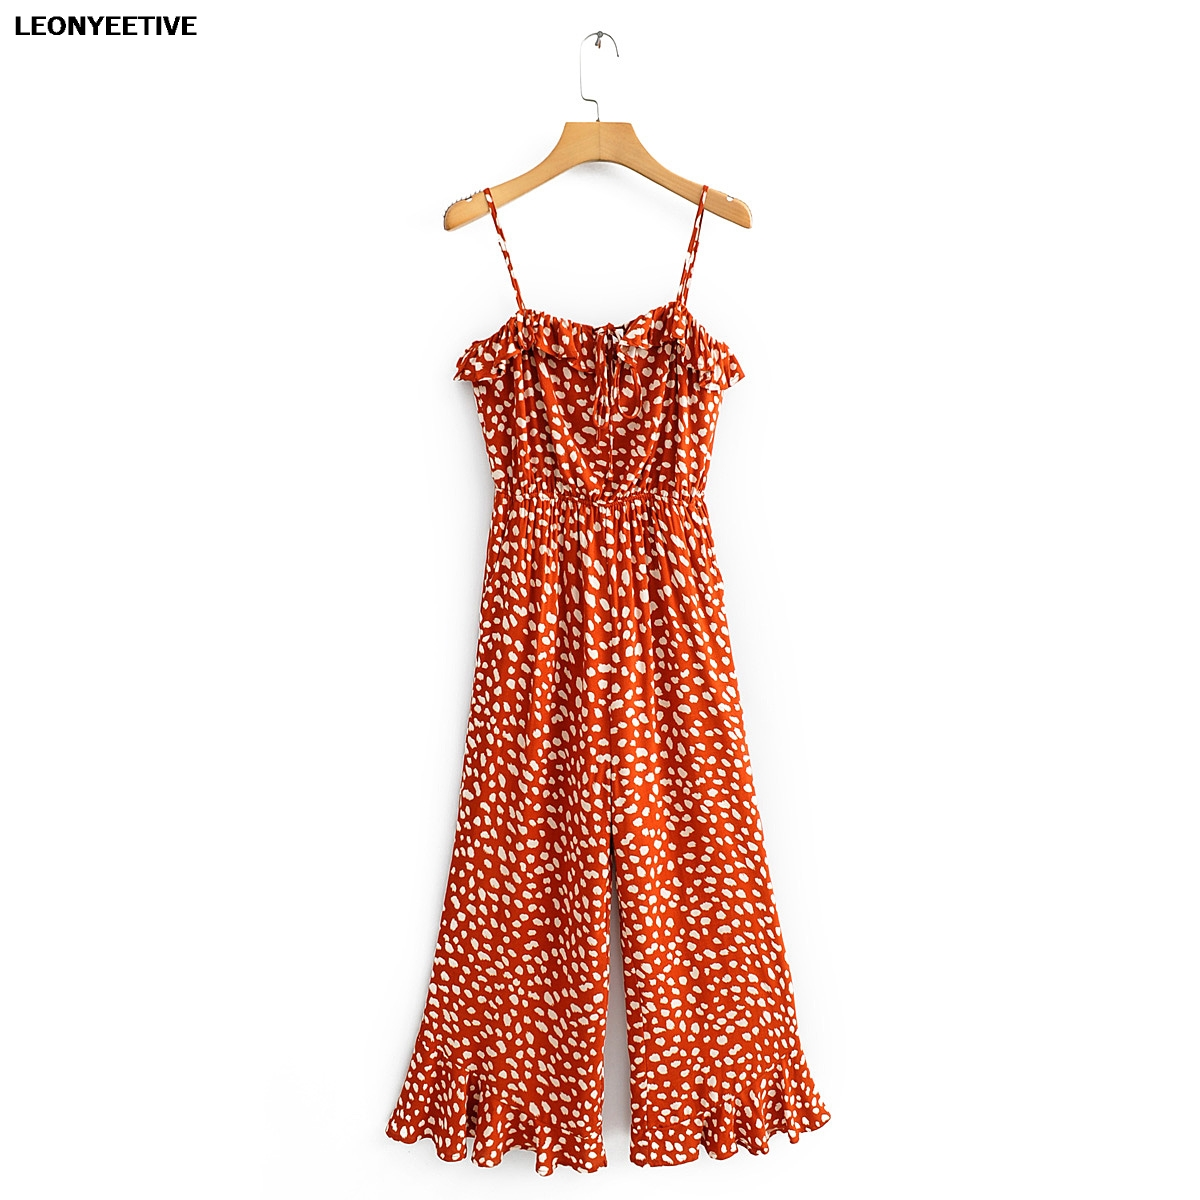 2020 New Fation Brand Rompers Jumpsuits Ankle-length Pants Print Bohemian Polyester Broadcloth Leonyeetive Regular